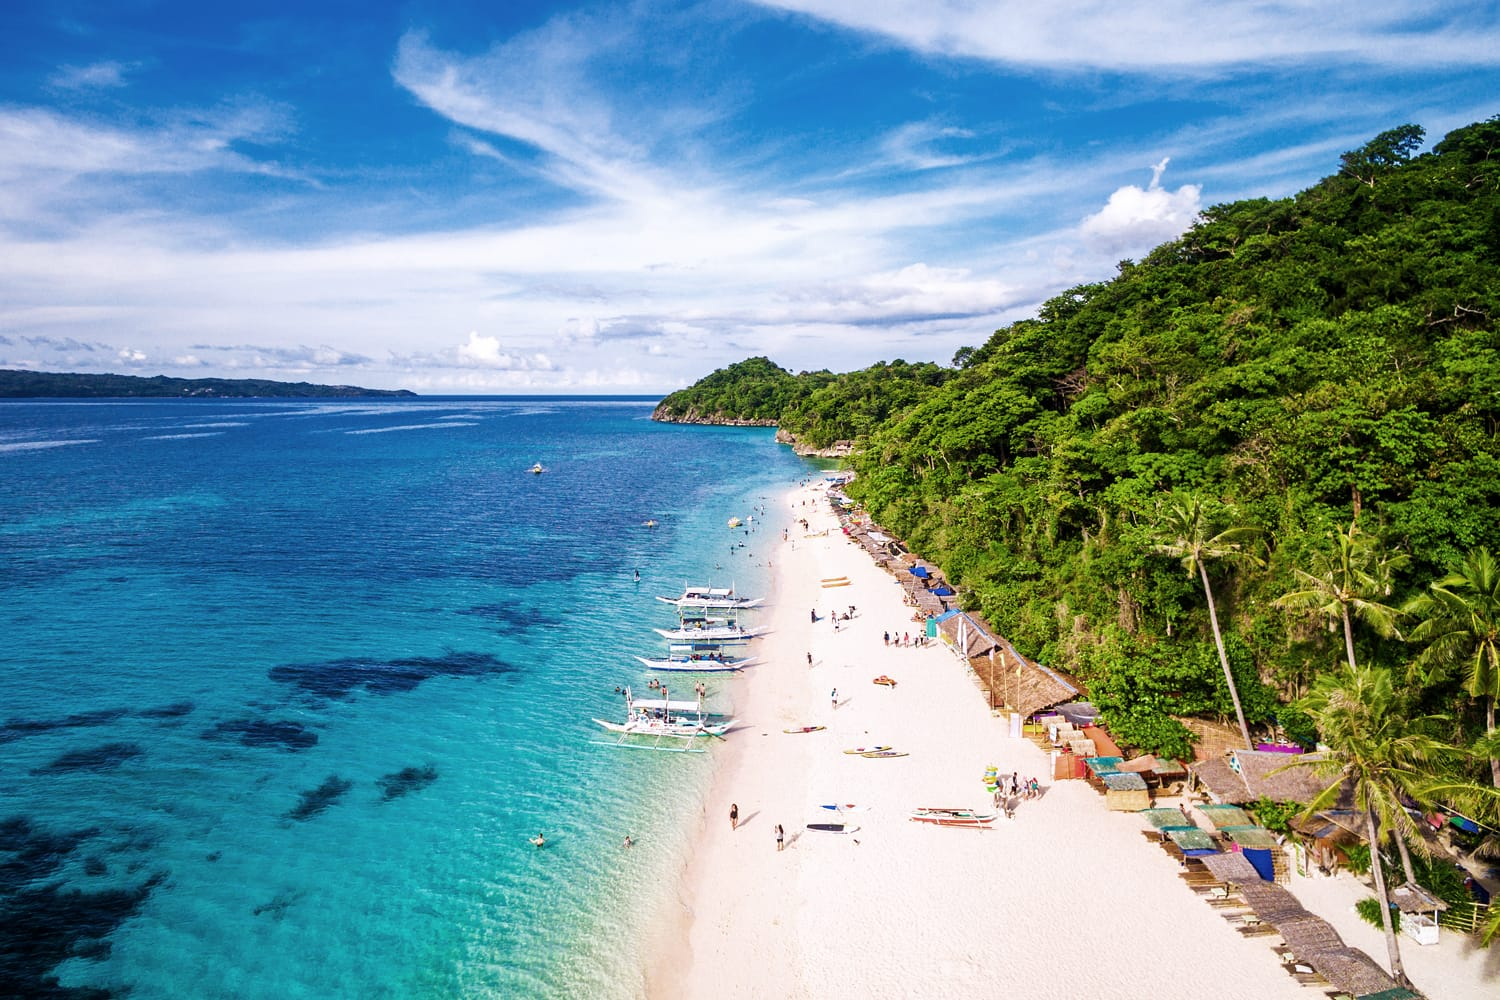 Aerial view of Boracay Island, Western Visayas, Philippines.